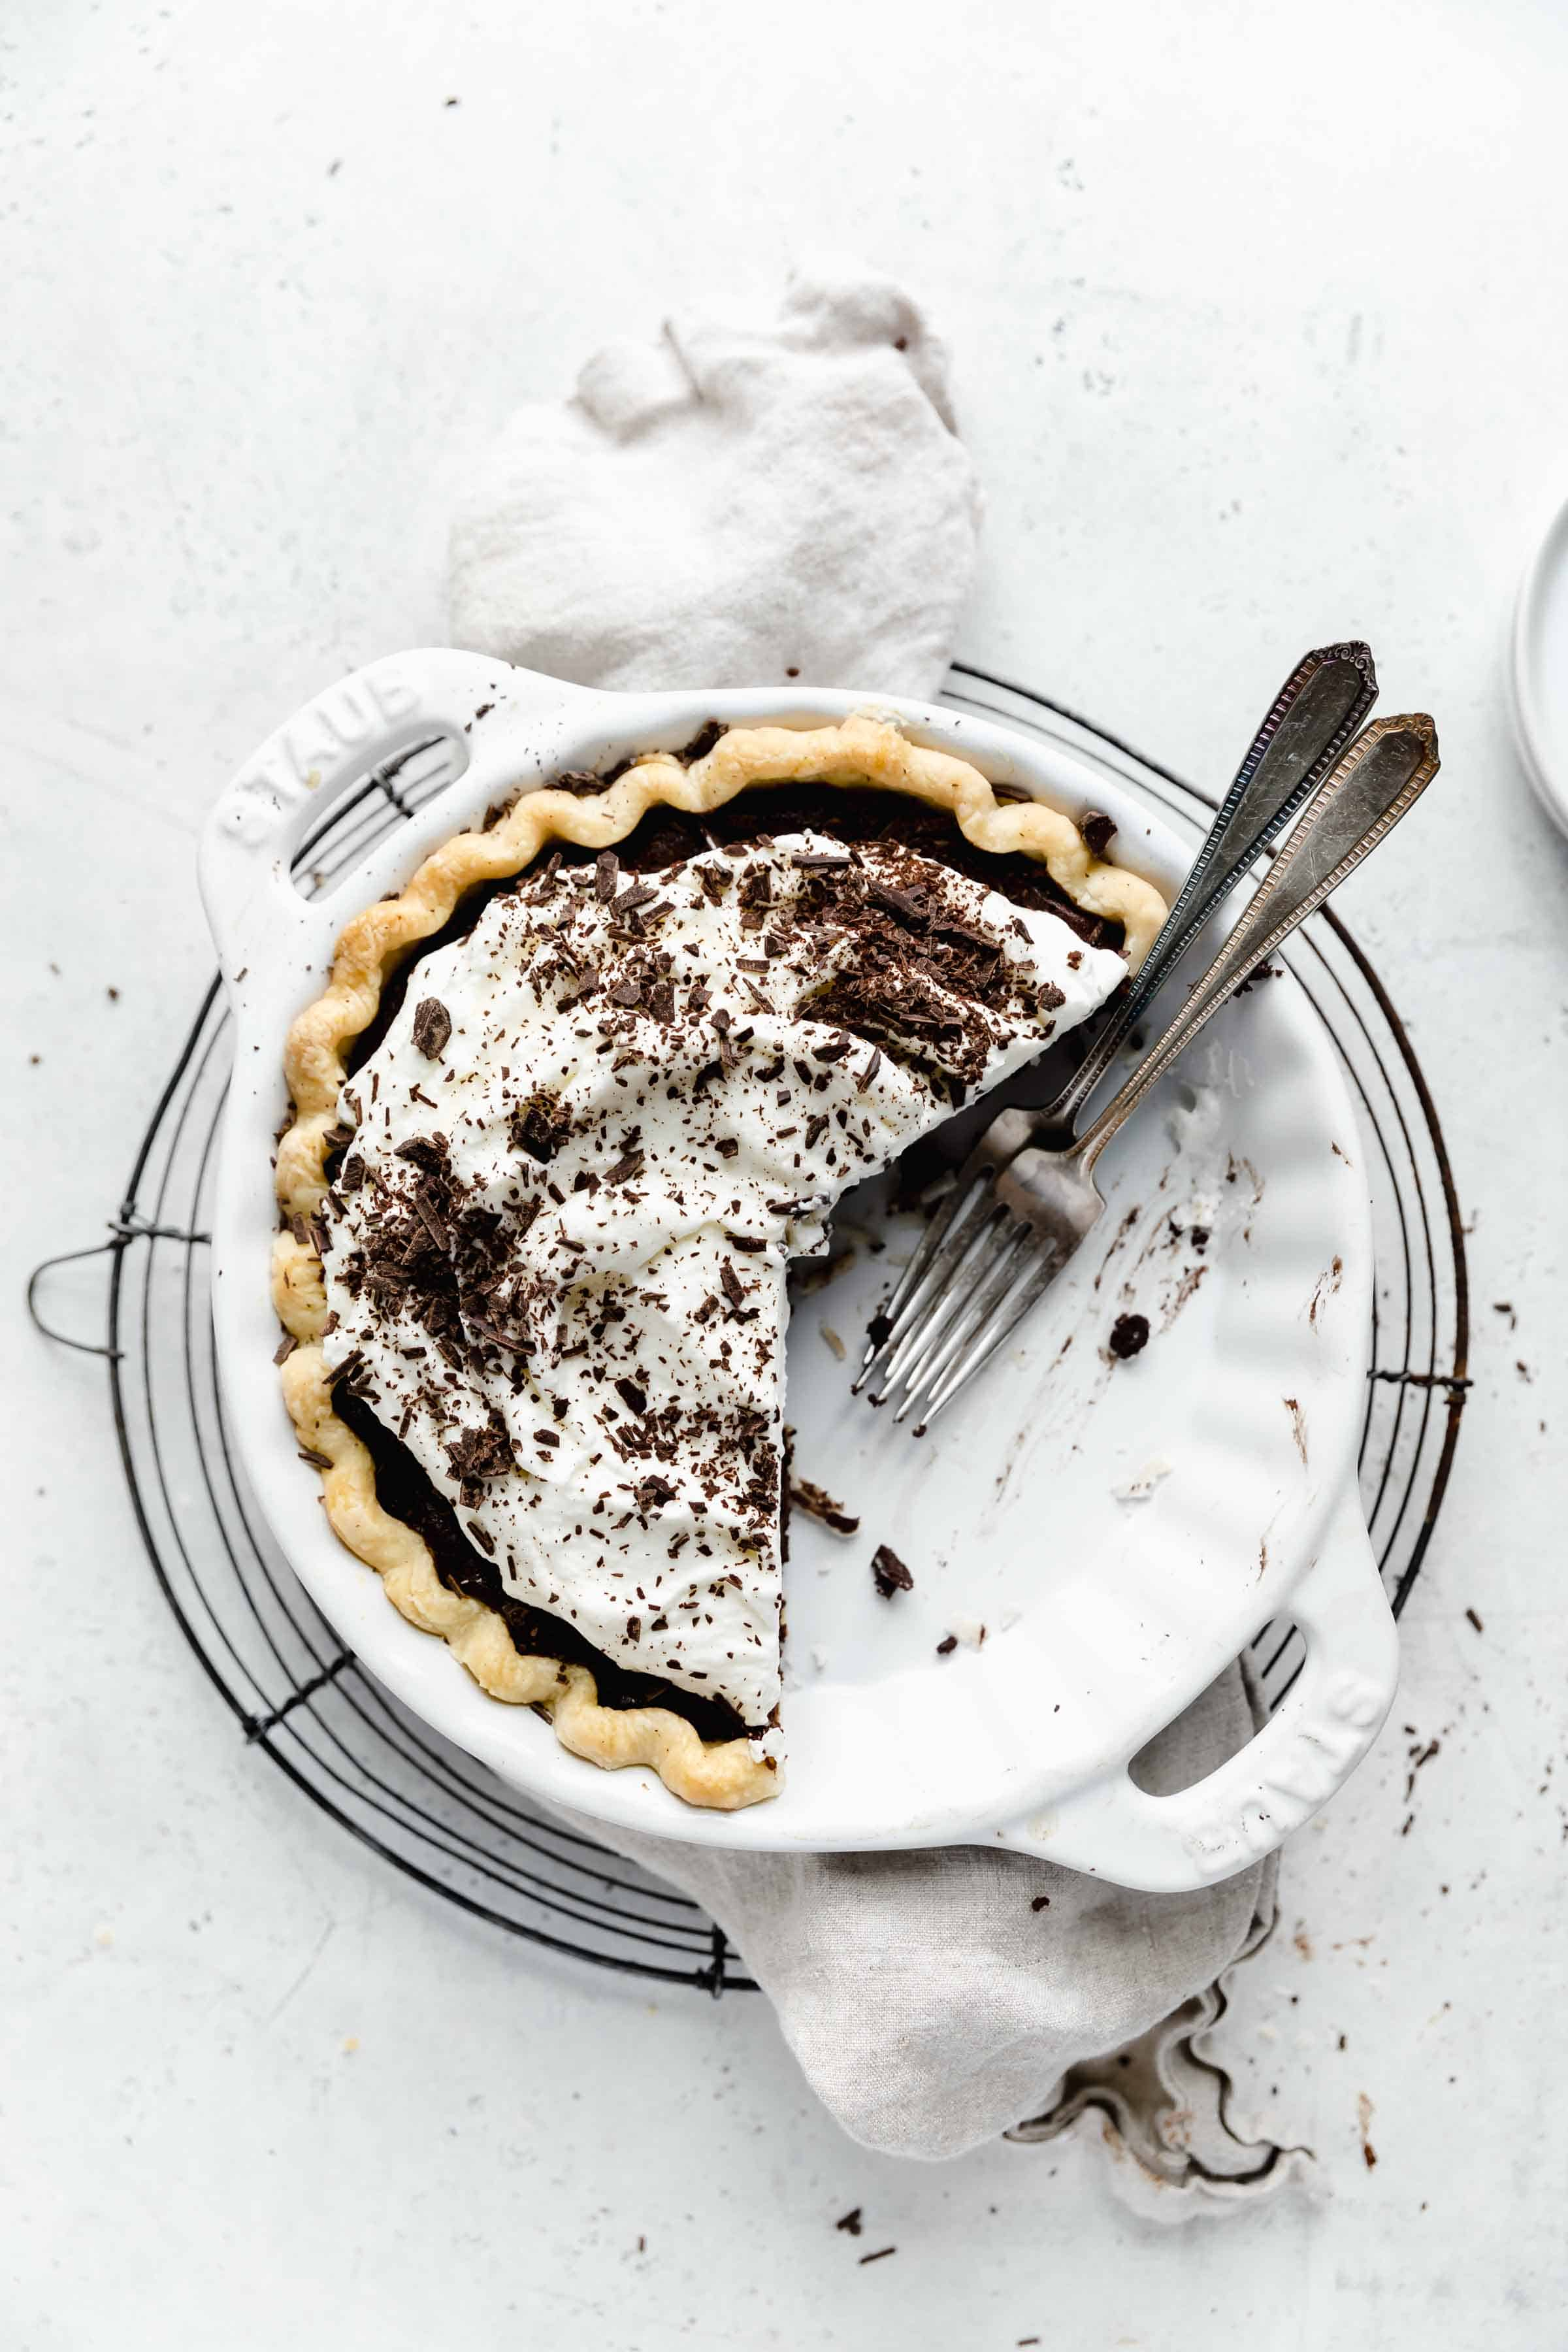 Rich, fudgy, and oh so chocolateyy this chocolate cream pie is a must for your thanksgiving dessert spread this year!